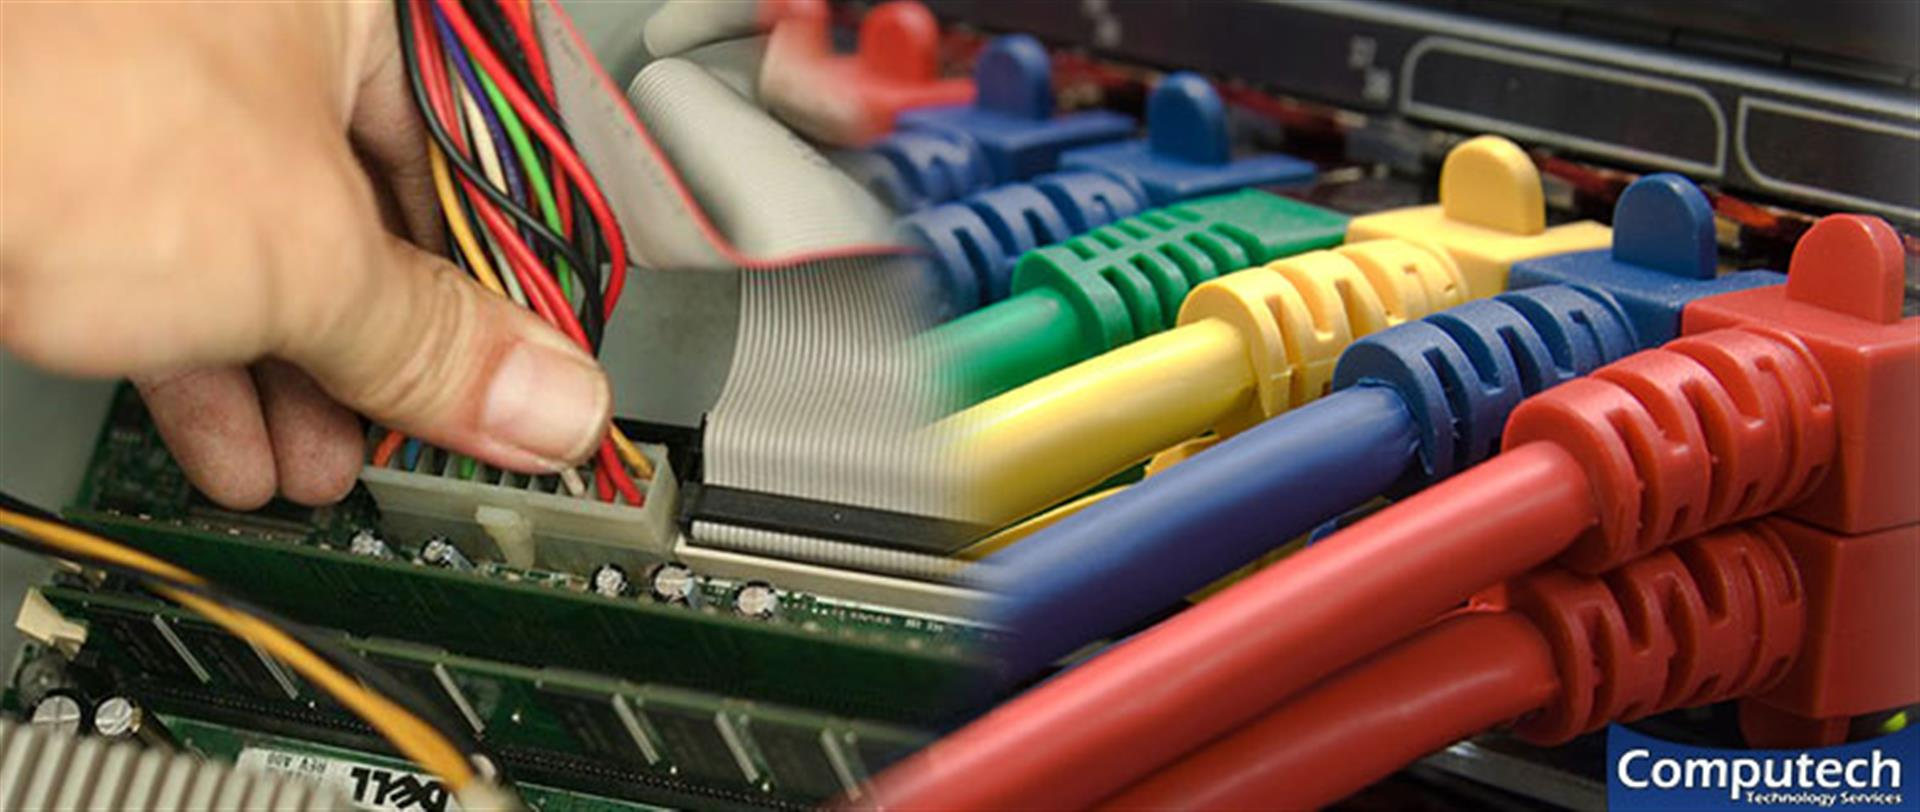 Eloy Arizona Onsite Computer & Printer Repairs, Networking, Voice and High Speed Data Wiring Services